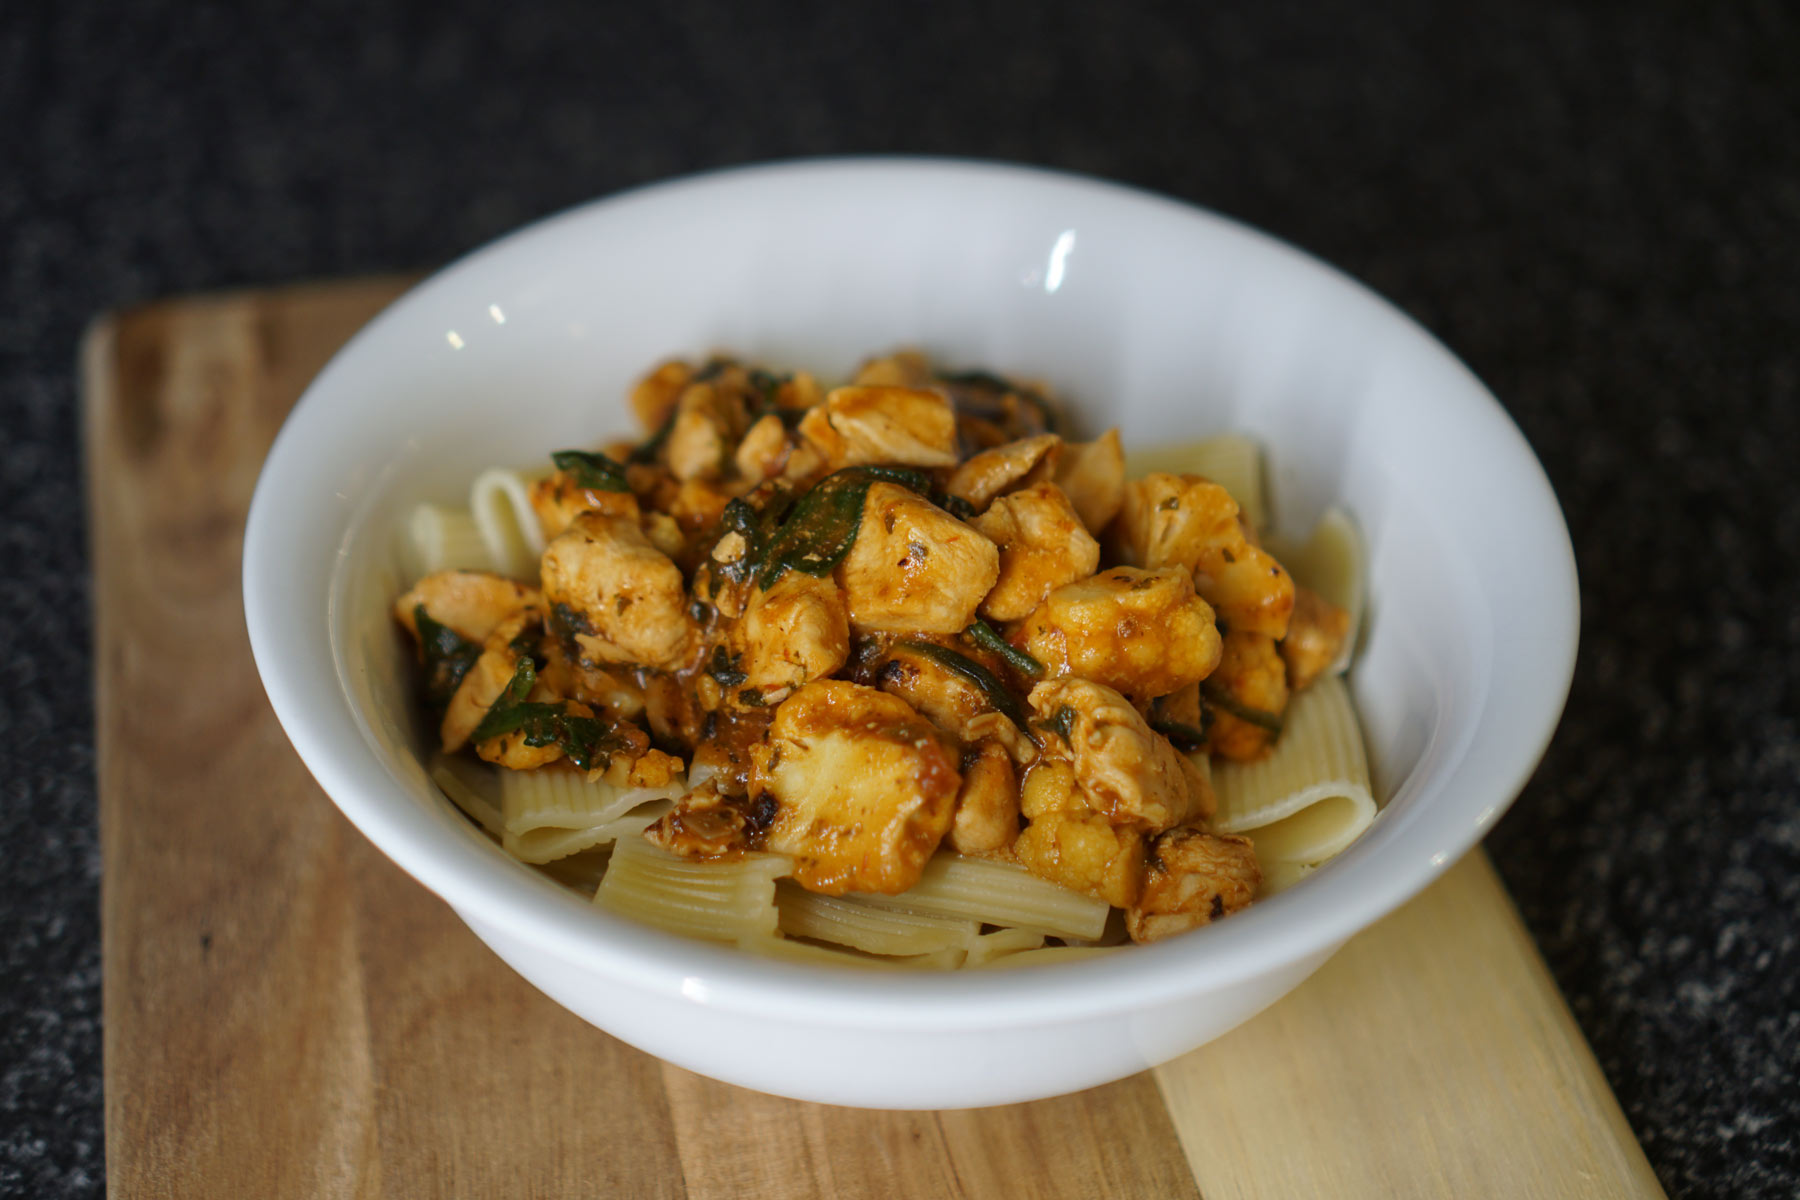 Diced Chicken Breast, Mushroom, Spinach & Cauliflower Rigatoni Pasta Bake